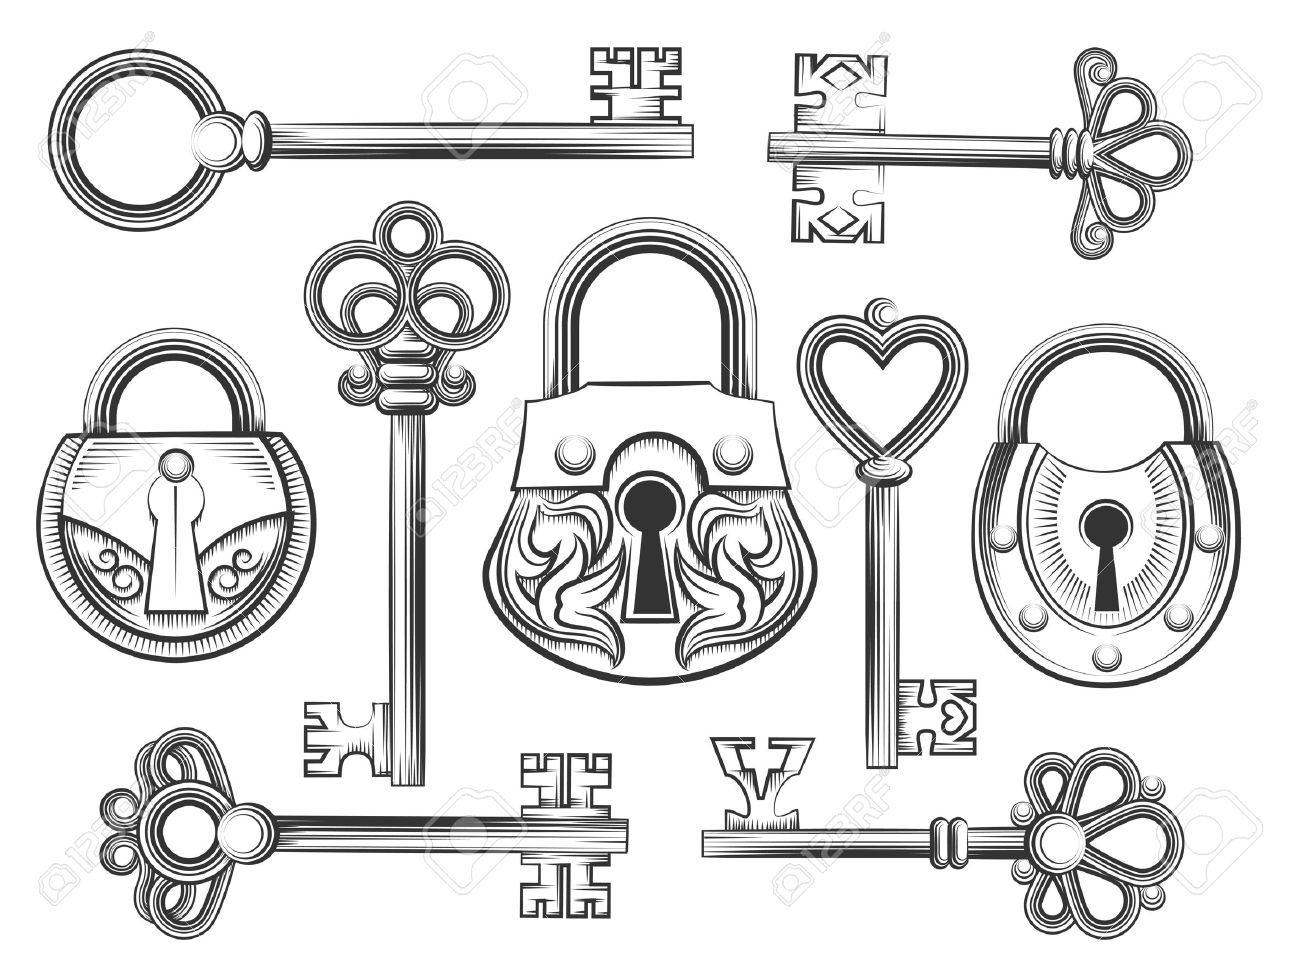 Hand drawn vintage key and lock vector set. Padlock and keyhole, antique collection, security and safety illustration - 46402280